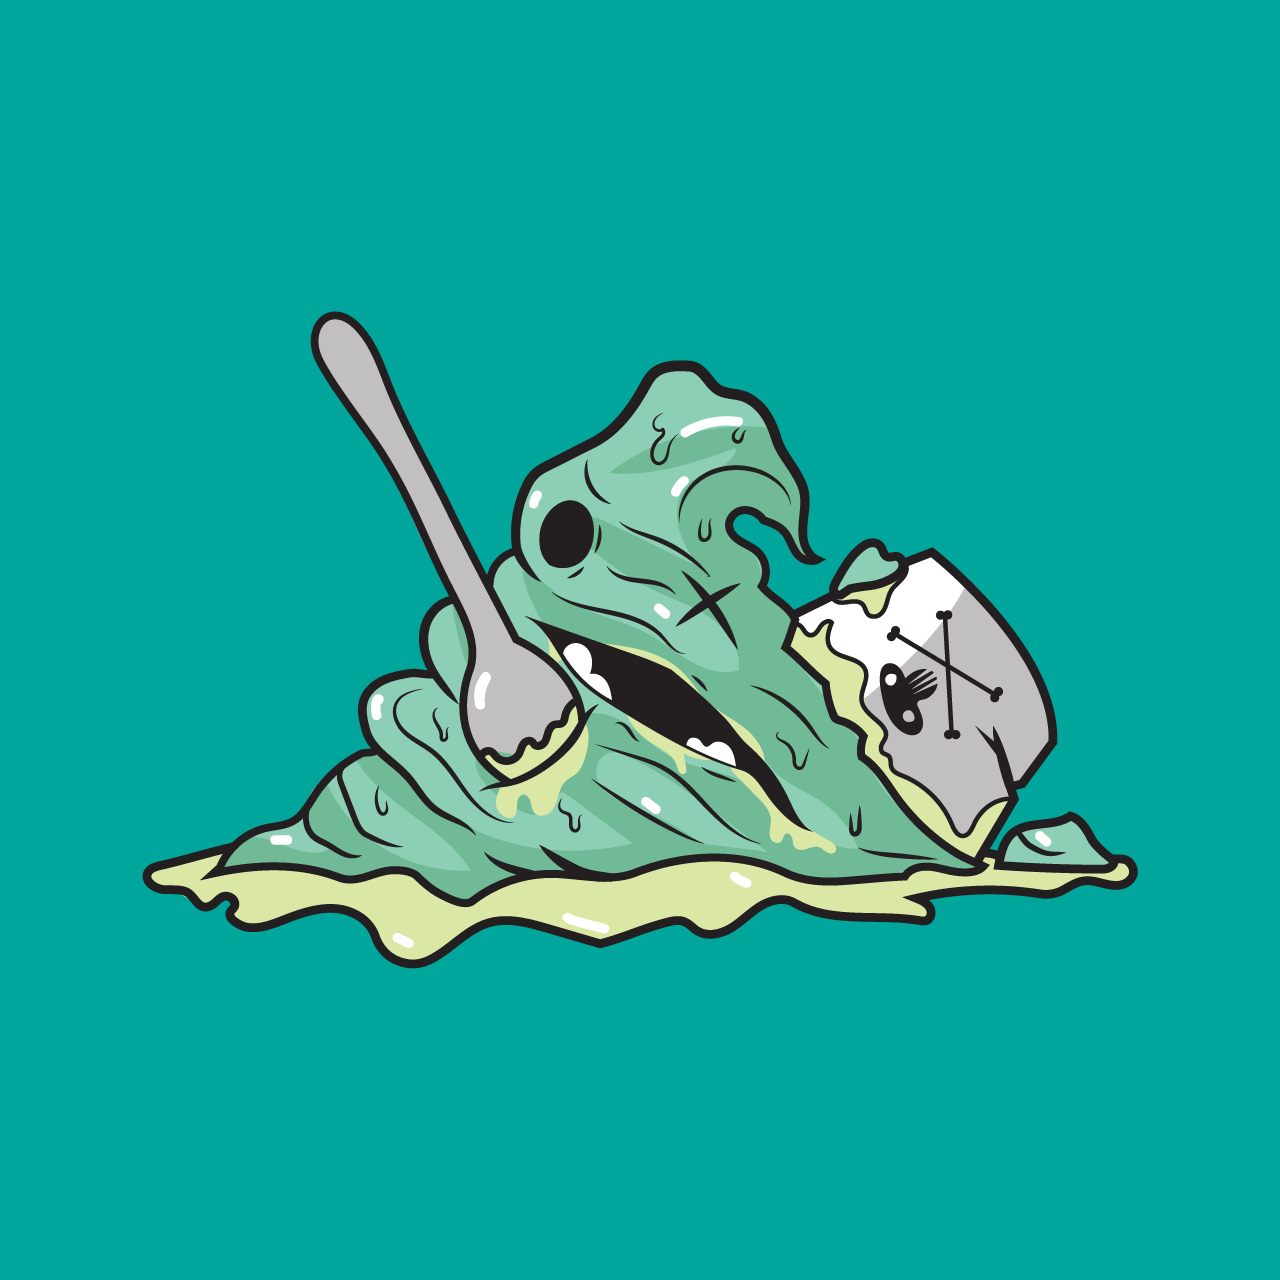 Mint - His human impaled him with a plastic spoon and decided to be too clumsy to properly hold a paper cup.